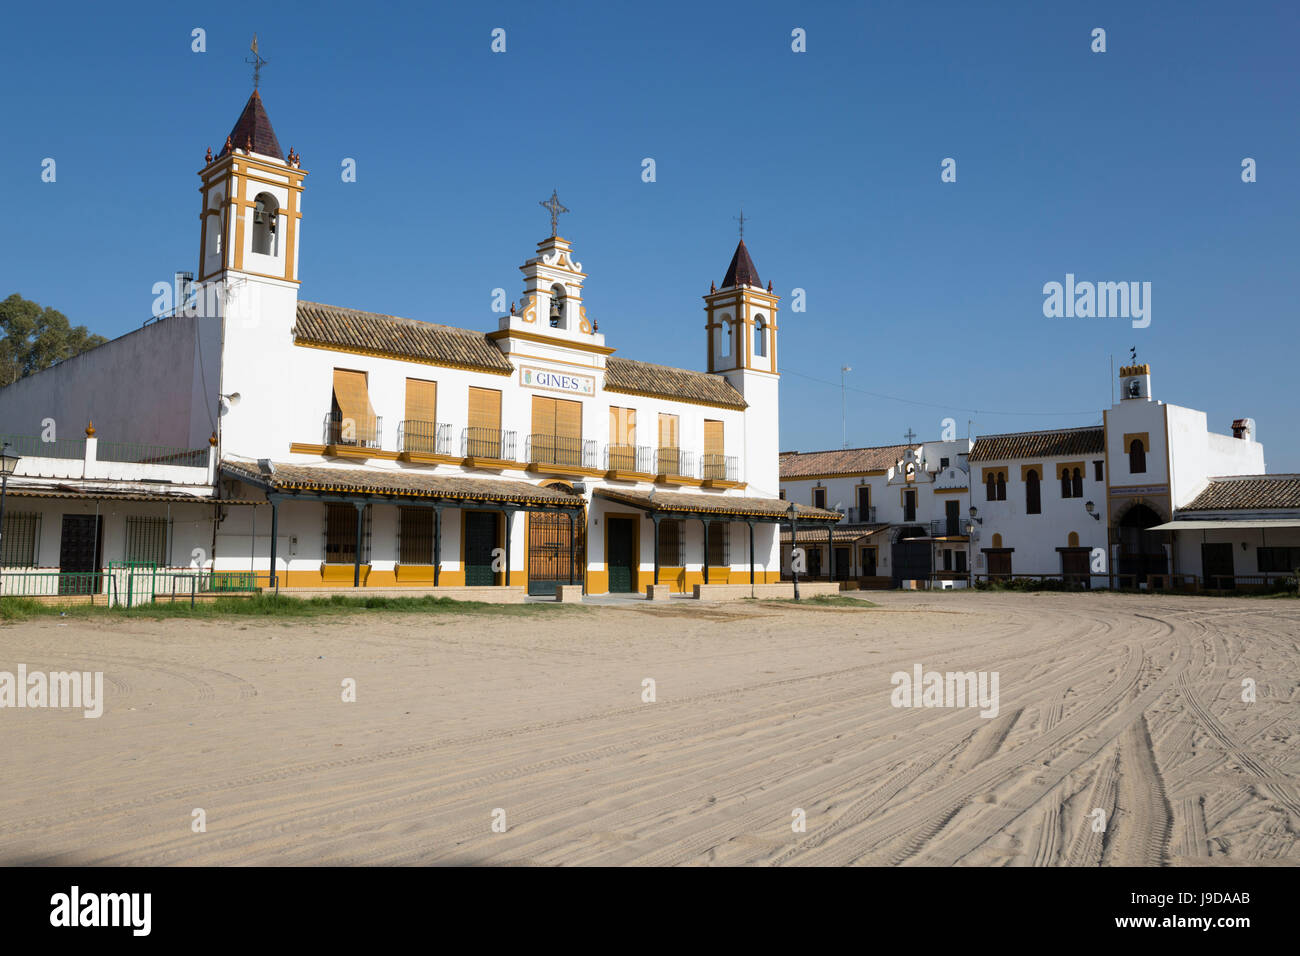 Sand streets and brotherhood houses, El Rocio, Huelva Province, Andalucia, Spain, Europe - Stock Image